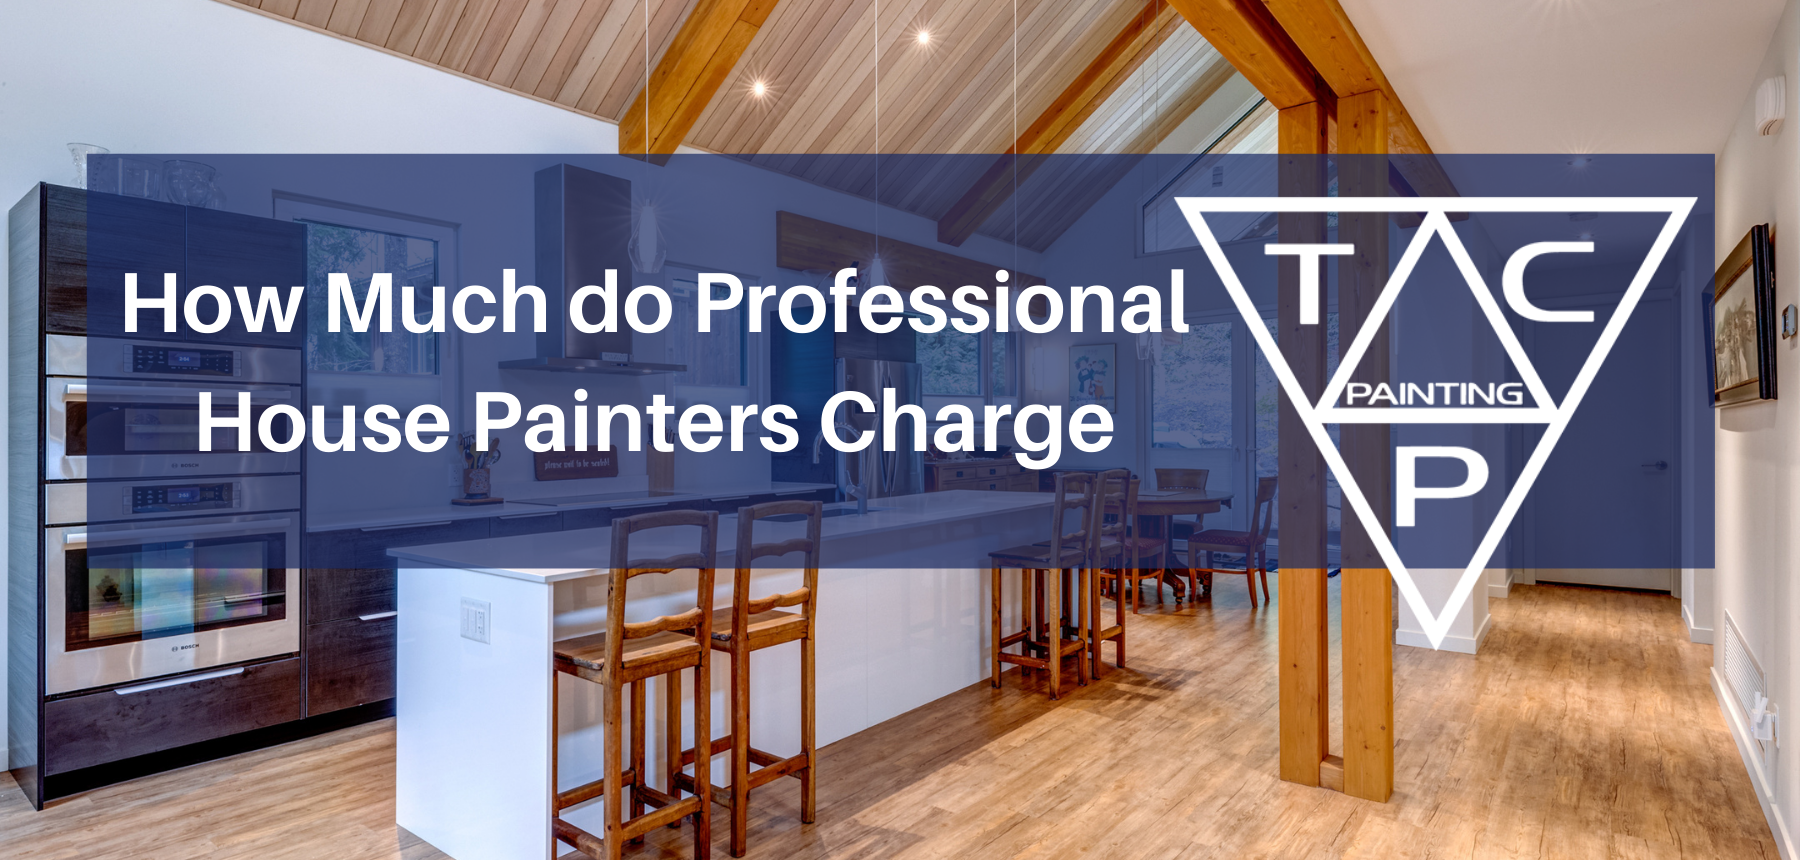 How Much Do Professional House Painters Charge?